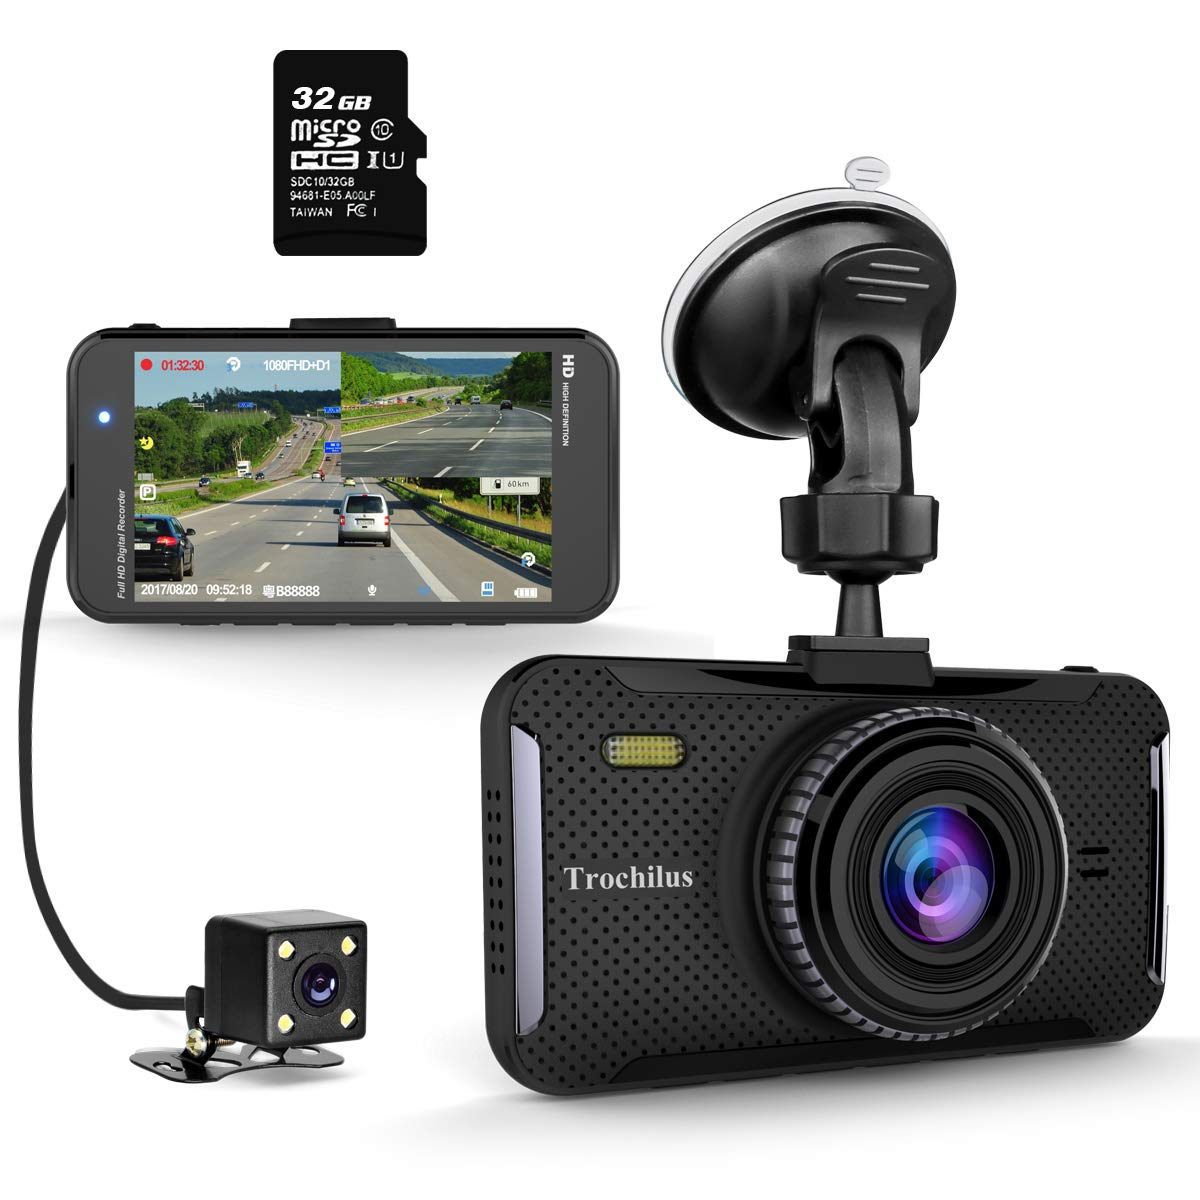 """Trochilus Dual Dash Cam 4"""" 1080P Front and Rear Dash Cams, 170 Degree Wide Angle Car Camera with G-Sensor, WDR, Loop Recording, Parking Monitor, Motion Detection, 32GB SD Card including"""